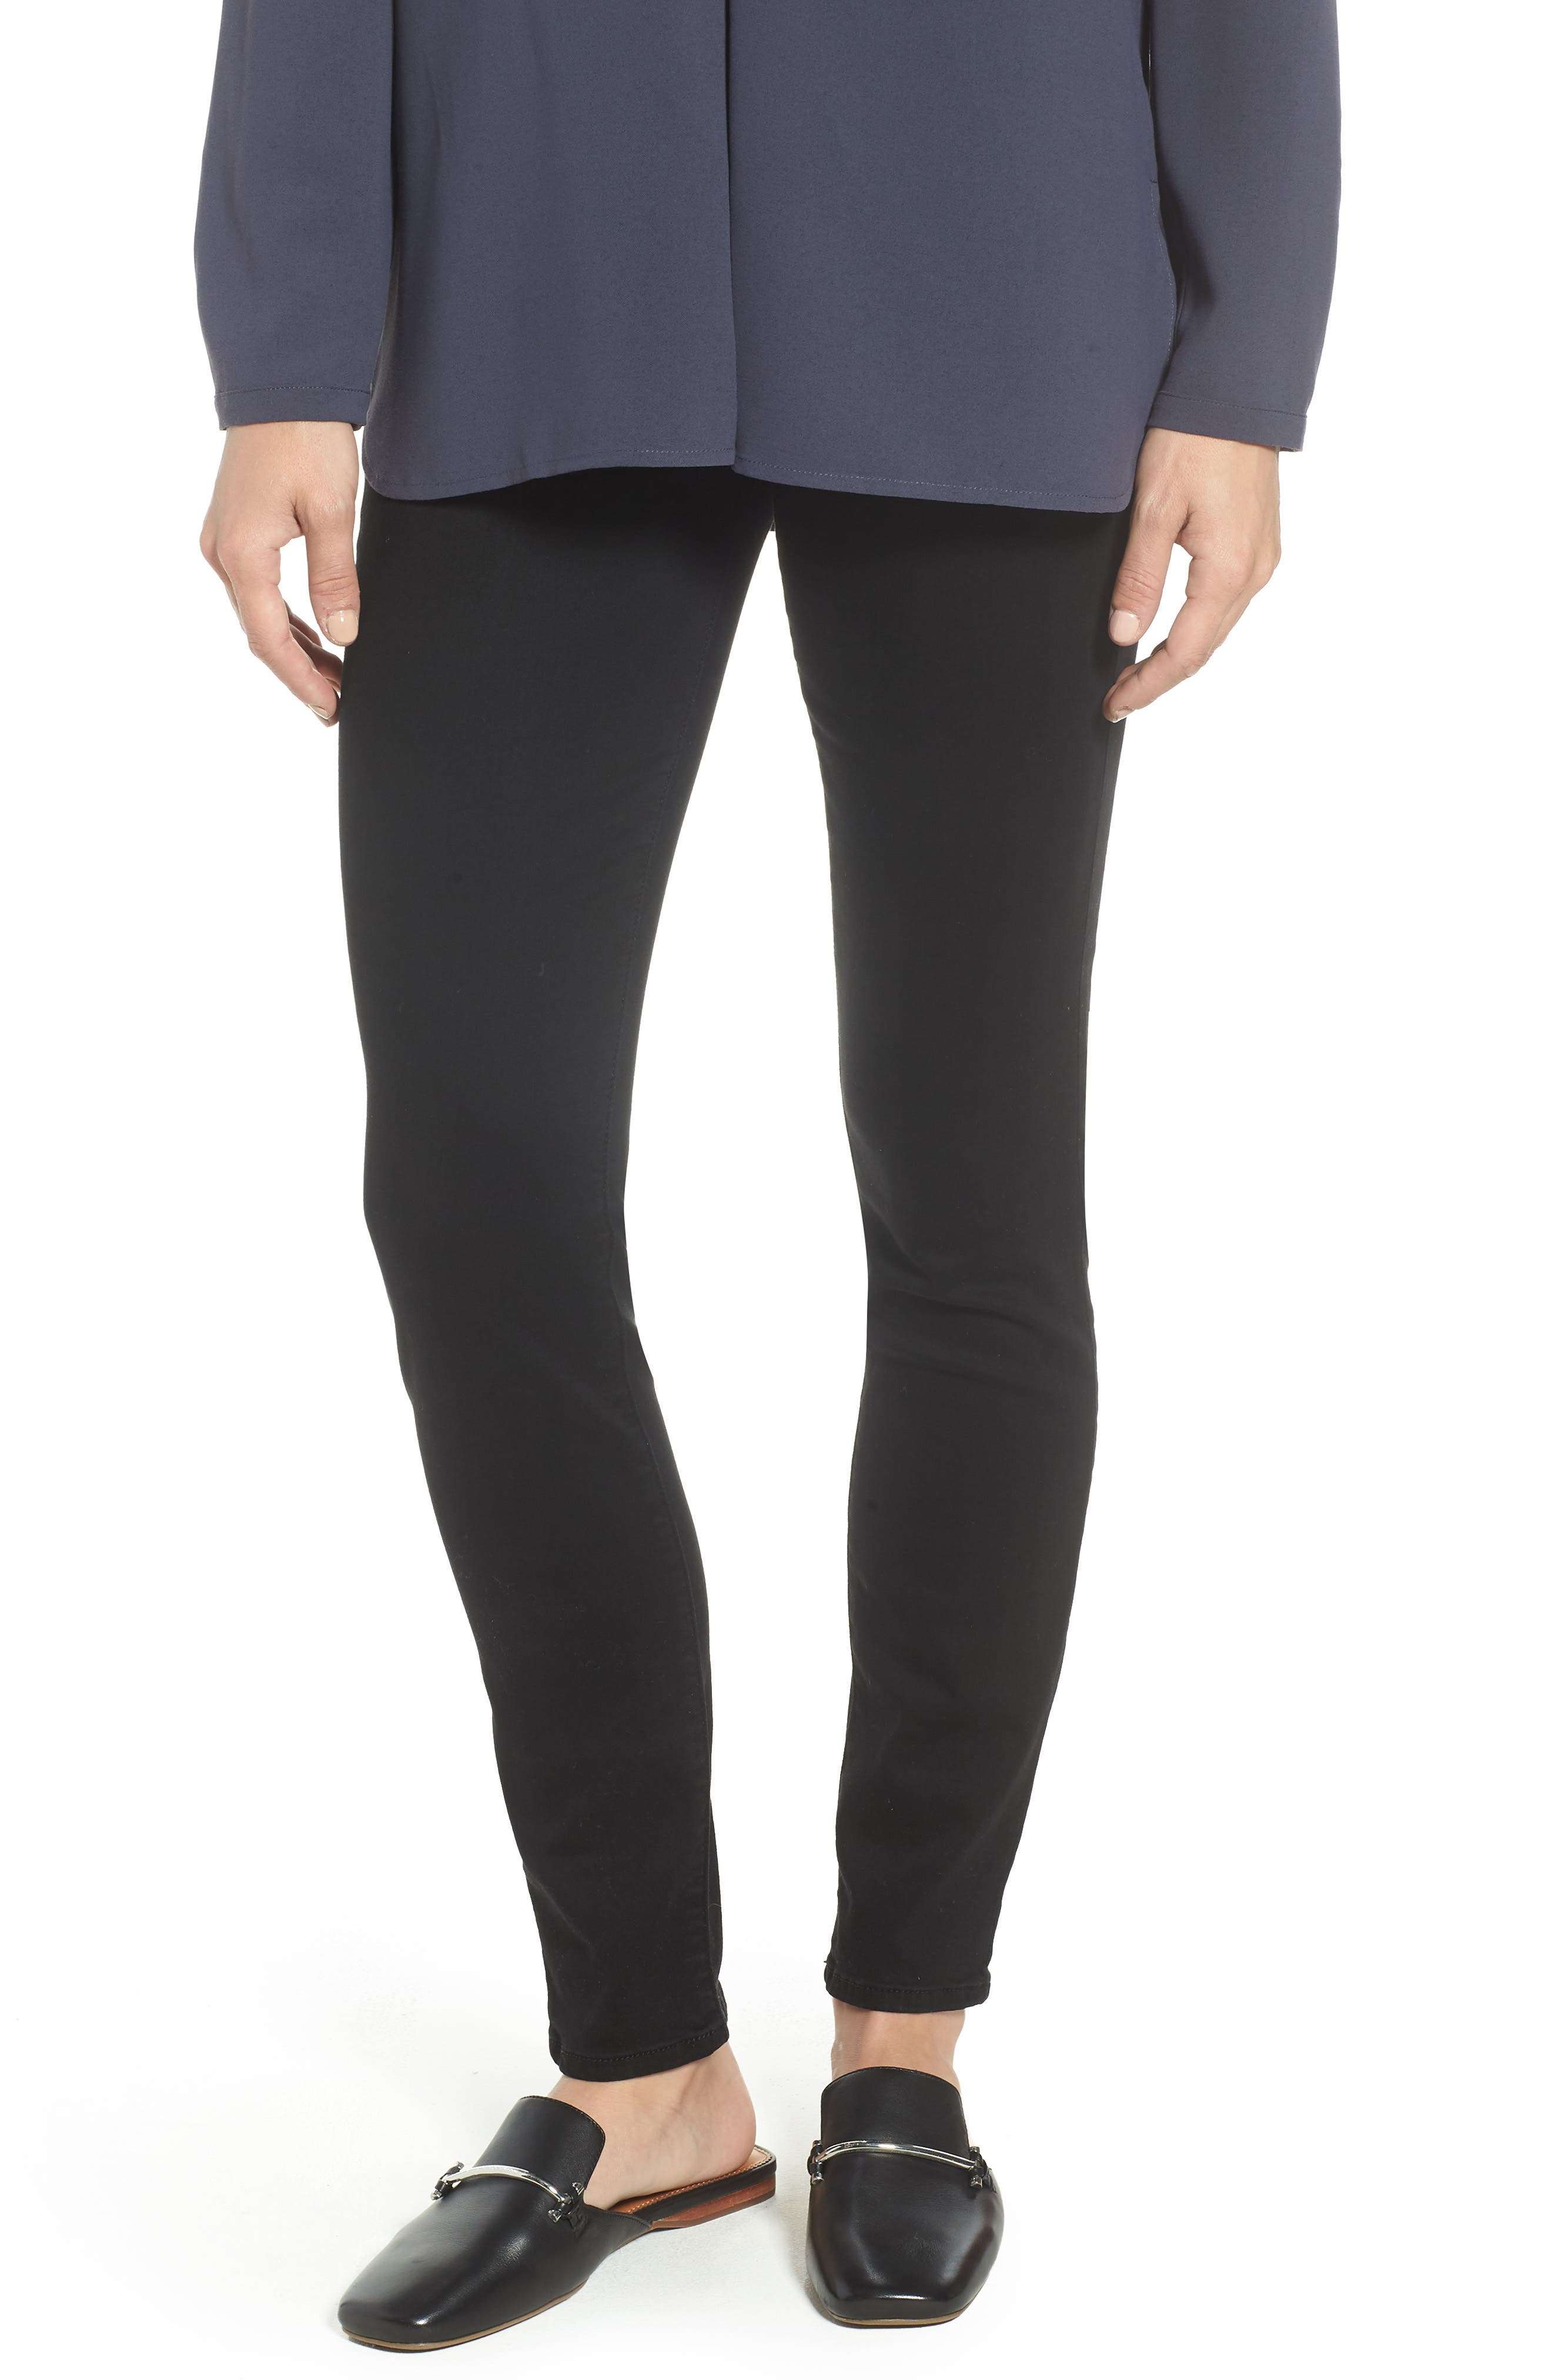 Comfort Skinny Denim Leggings,                             Main thumbnail 1, color,                             RICHE TOUCH BLACK NOIR